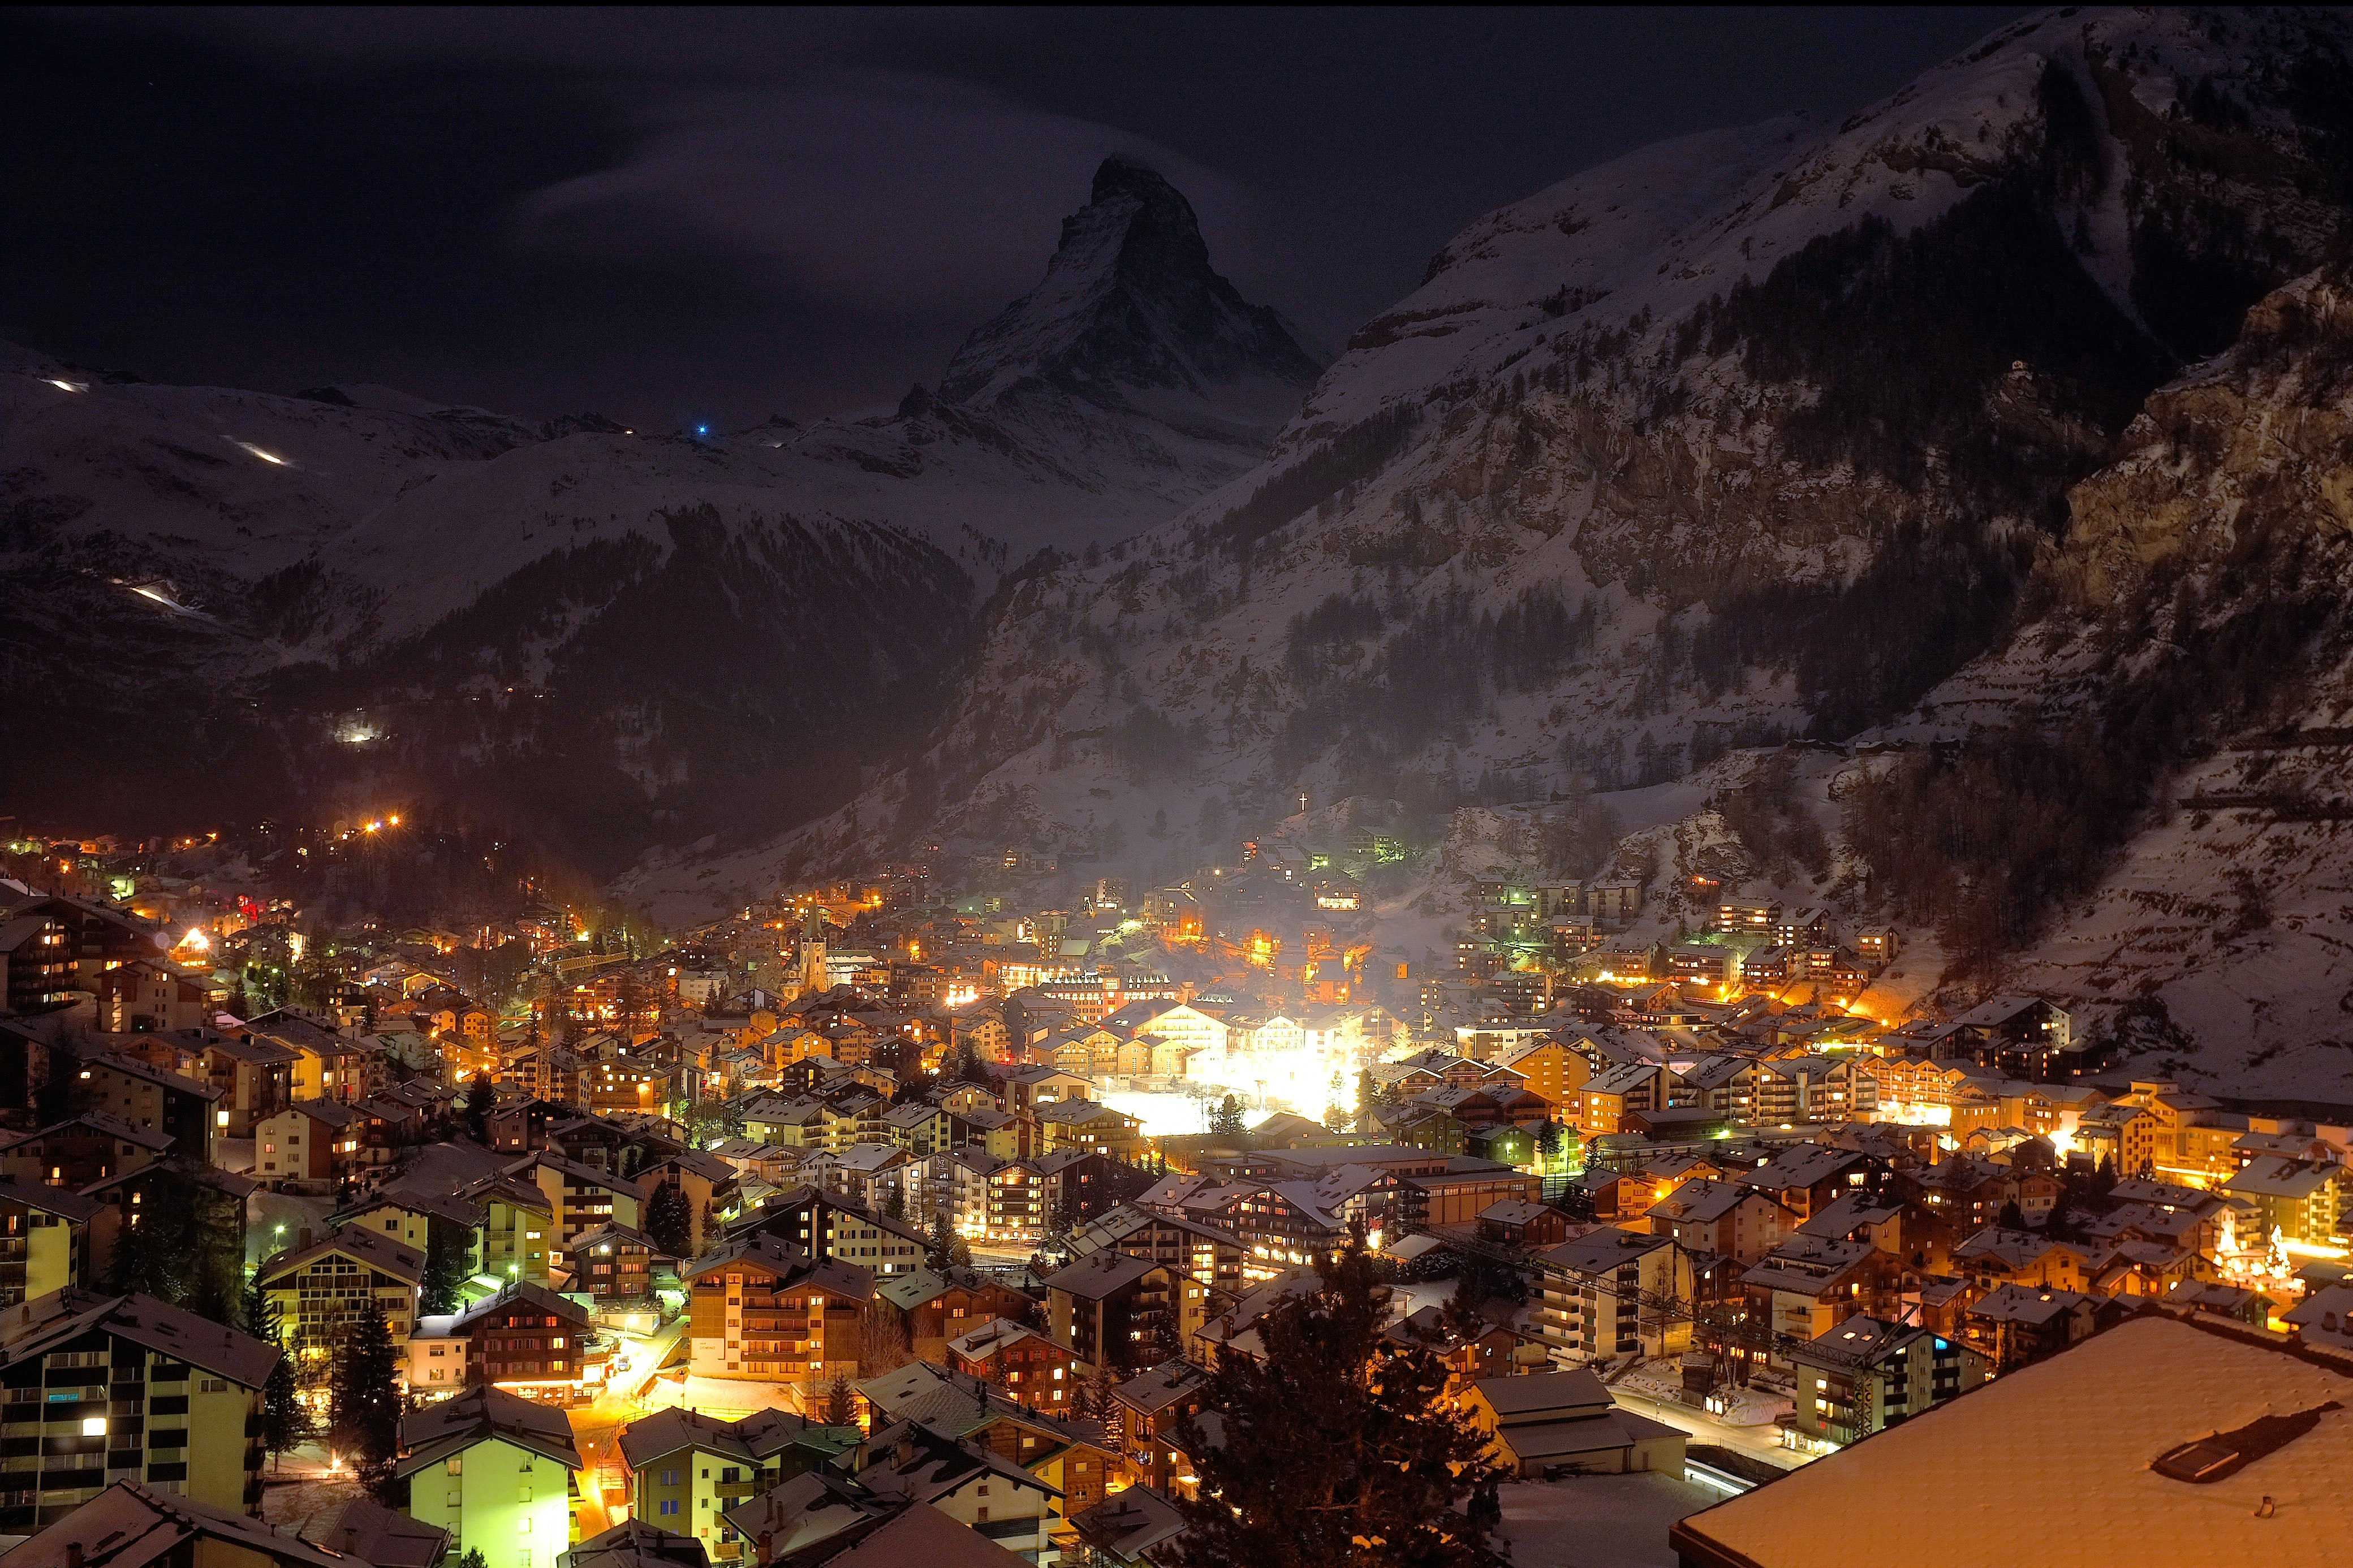 A village at night with all buildings lit up with a snow-covered mountain in the background